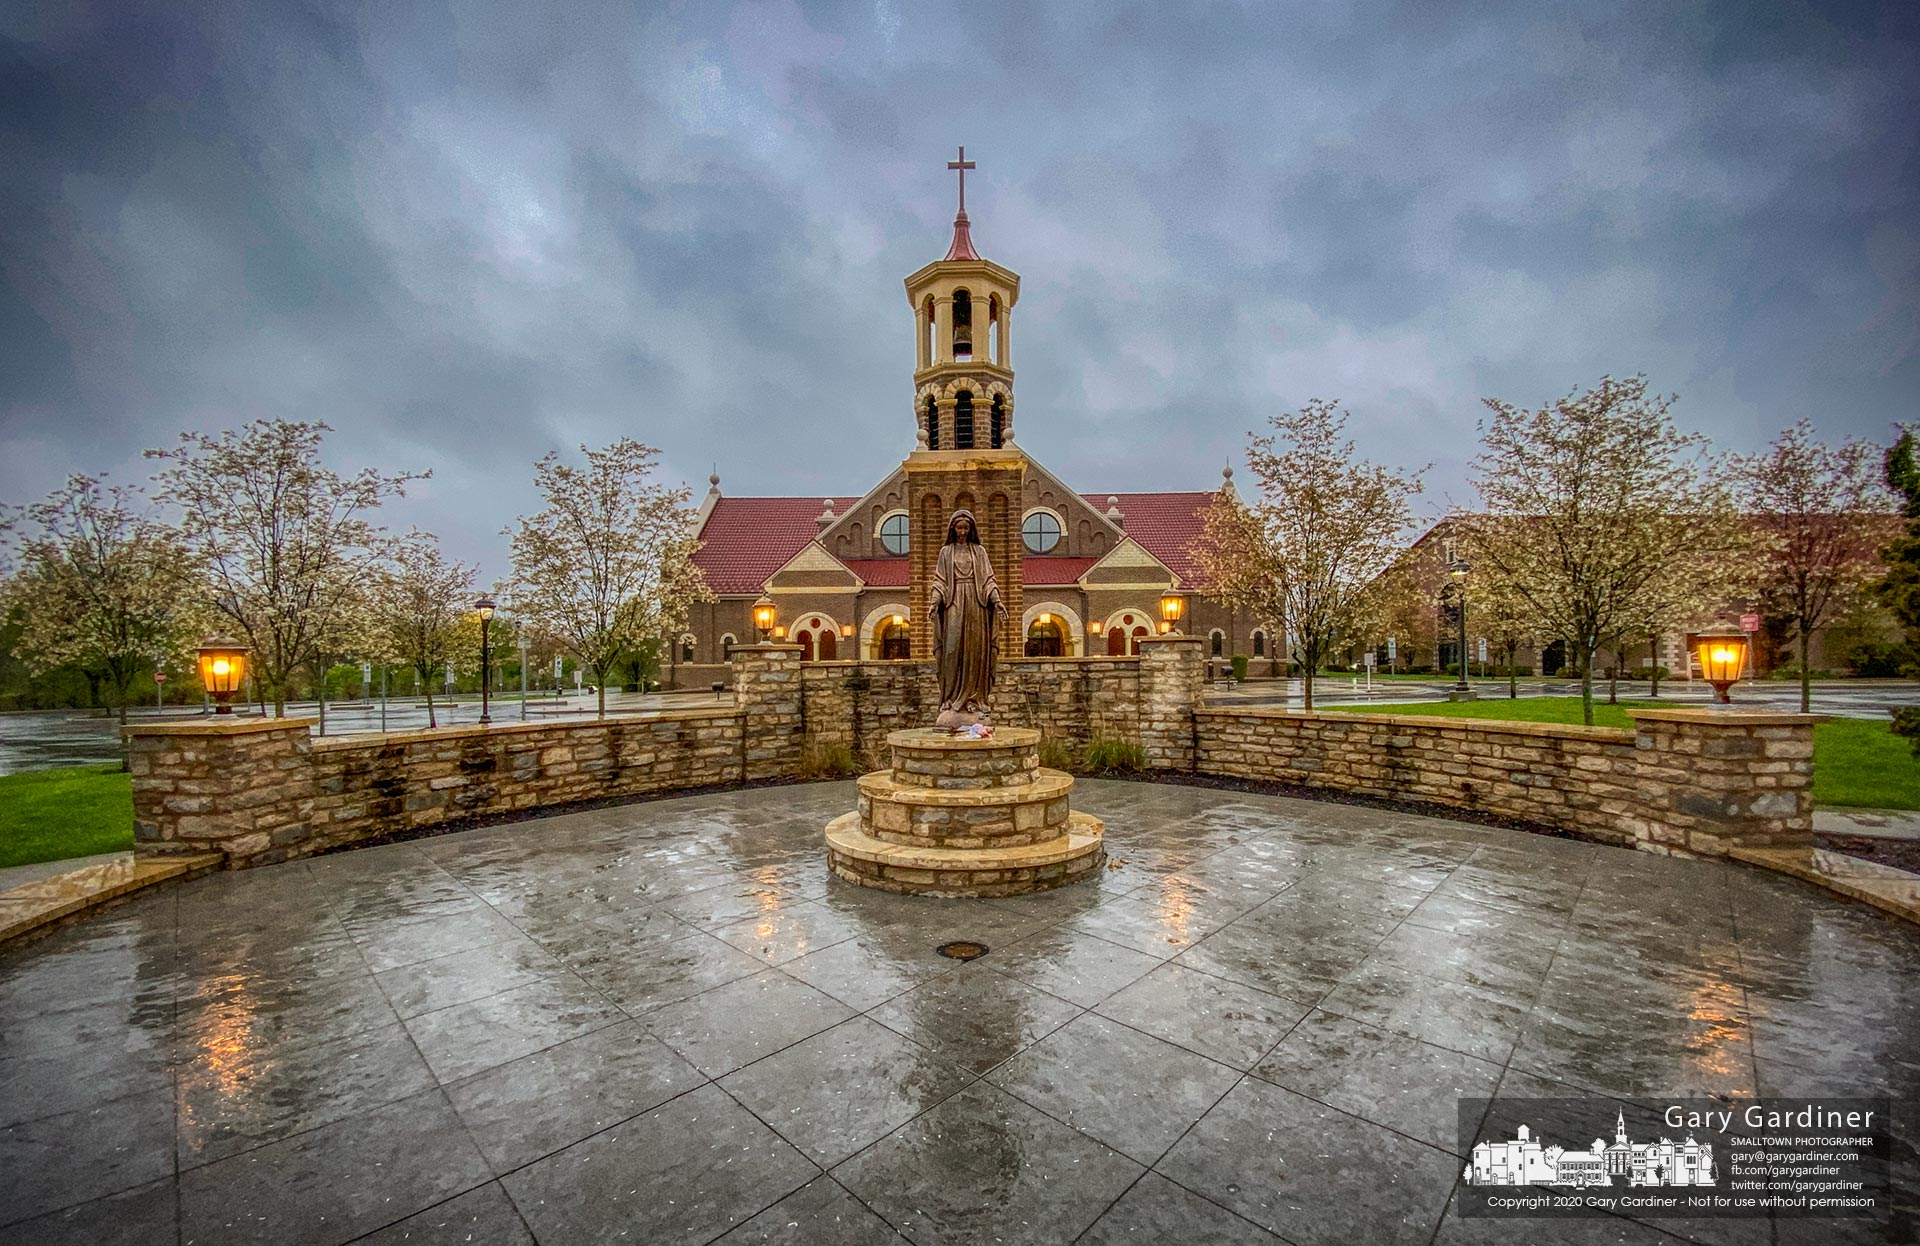 Rain dampens St. Paul the Apostle Catholic Church where Sunday Mass is broadcast on Facebook during the pandemic lockdown. My Final Photo for April 26, 2020.